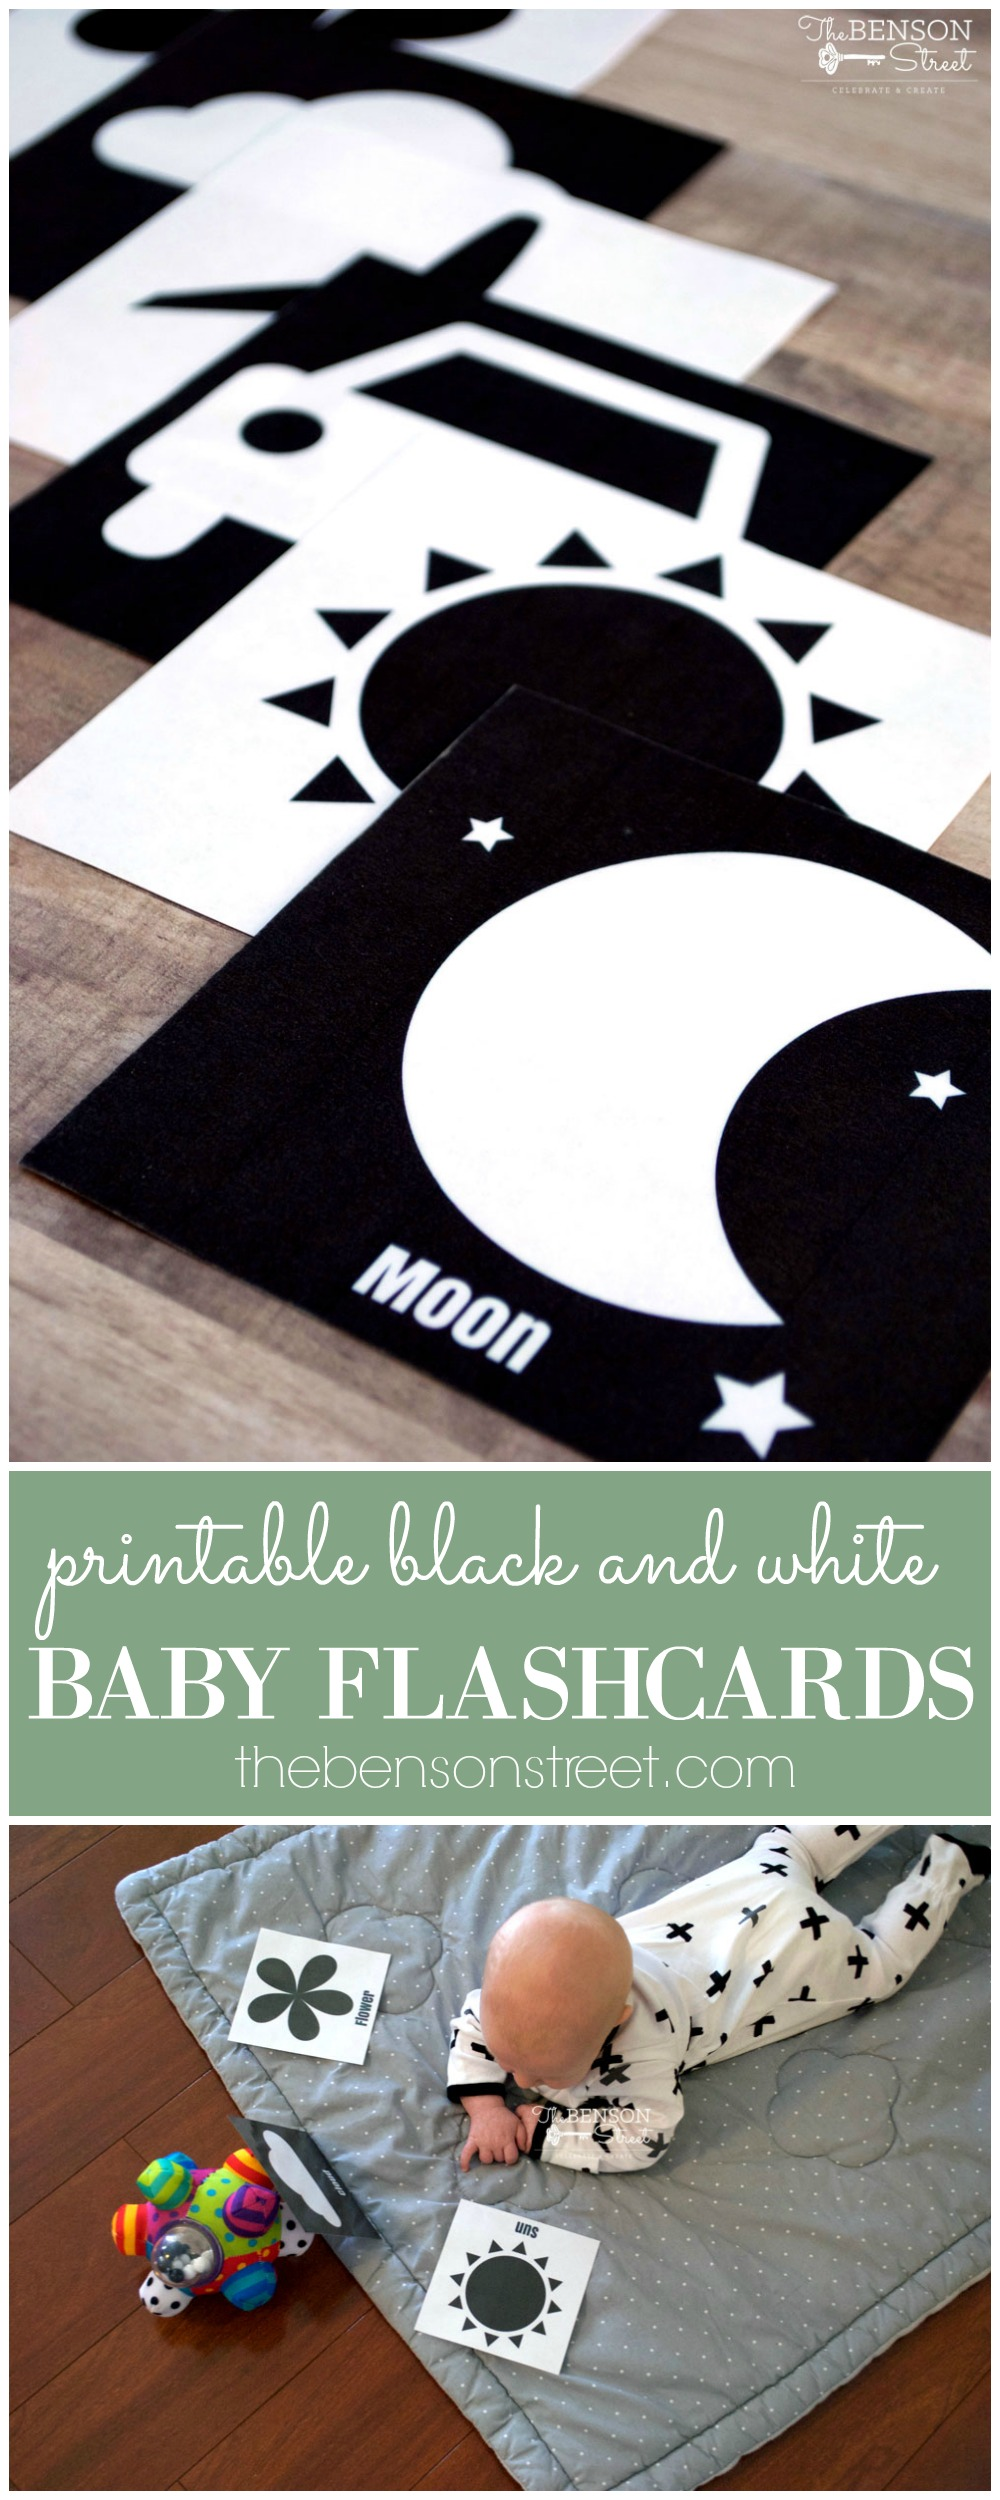 image about Printable Baby Flash Cards named Black and White Child Flashcards - The Benson Road